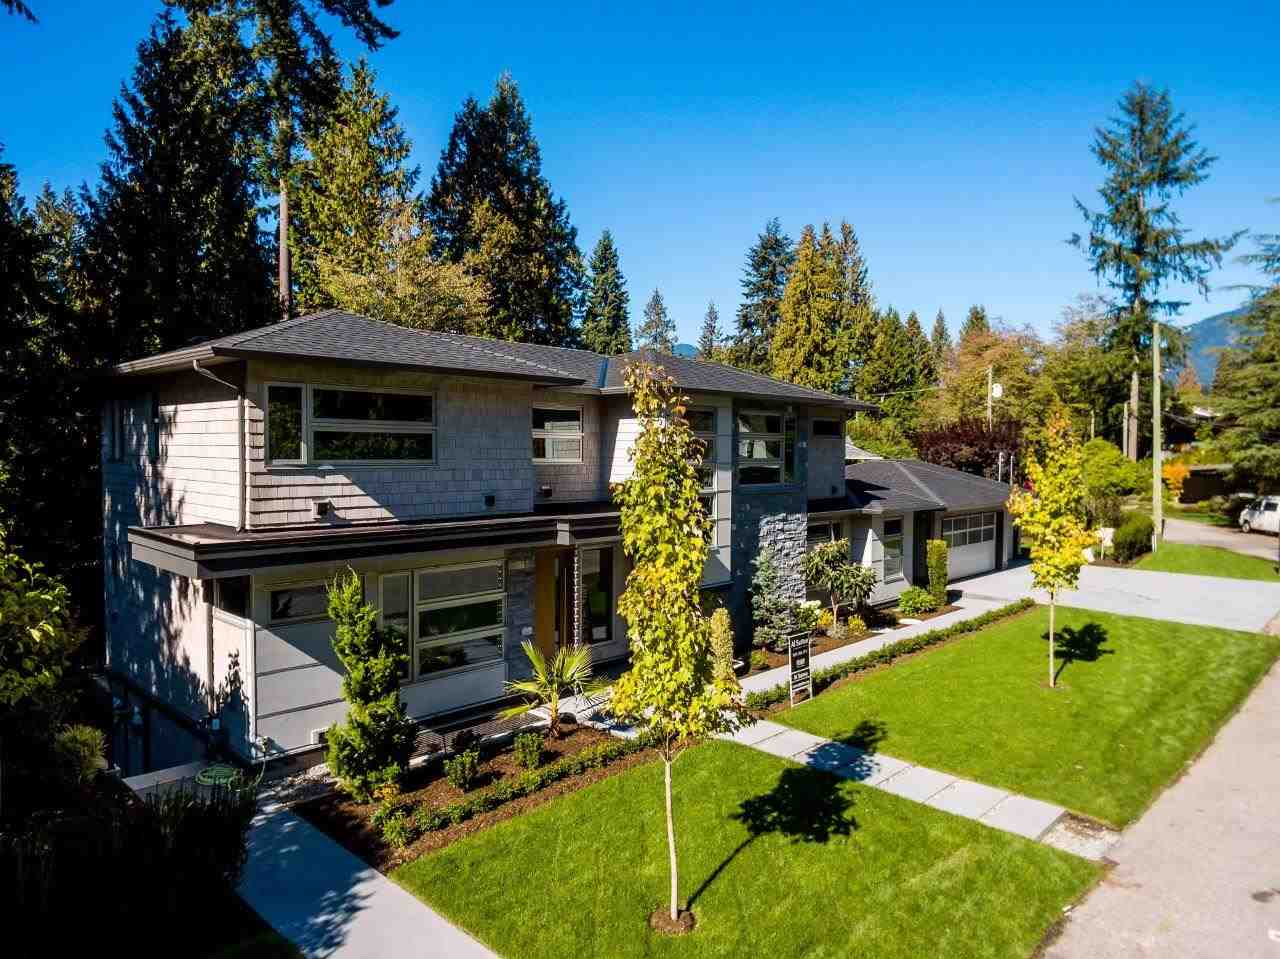 This impressive modern classic offers 5400 sq ft over 3 levels and is located on a private Edgemont street boasting 163 ft of frontage and triple car garage. Features include endless h/w floors, large dining, spacious living with ear to ear gas fireplace and eclipse doors leading to a covered patio with B/I BBQ centre. The large kitchen ( has separate wok kitchen too) boasts Sub-Zero and Wolf appliances and large island adjoining eating area and family room with eclipse patio doors leading out a spacious patio. Upstairs offers 4 bedrooms that include a huge master with w/I closet and gorgeous 5 piece ensuite. Entertain downstairs with rec. media, games, guest bdrm and wine room. Very private rear yard with a nice water feature. A step above the rest! Open Sunday October 22nd 2-4